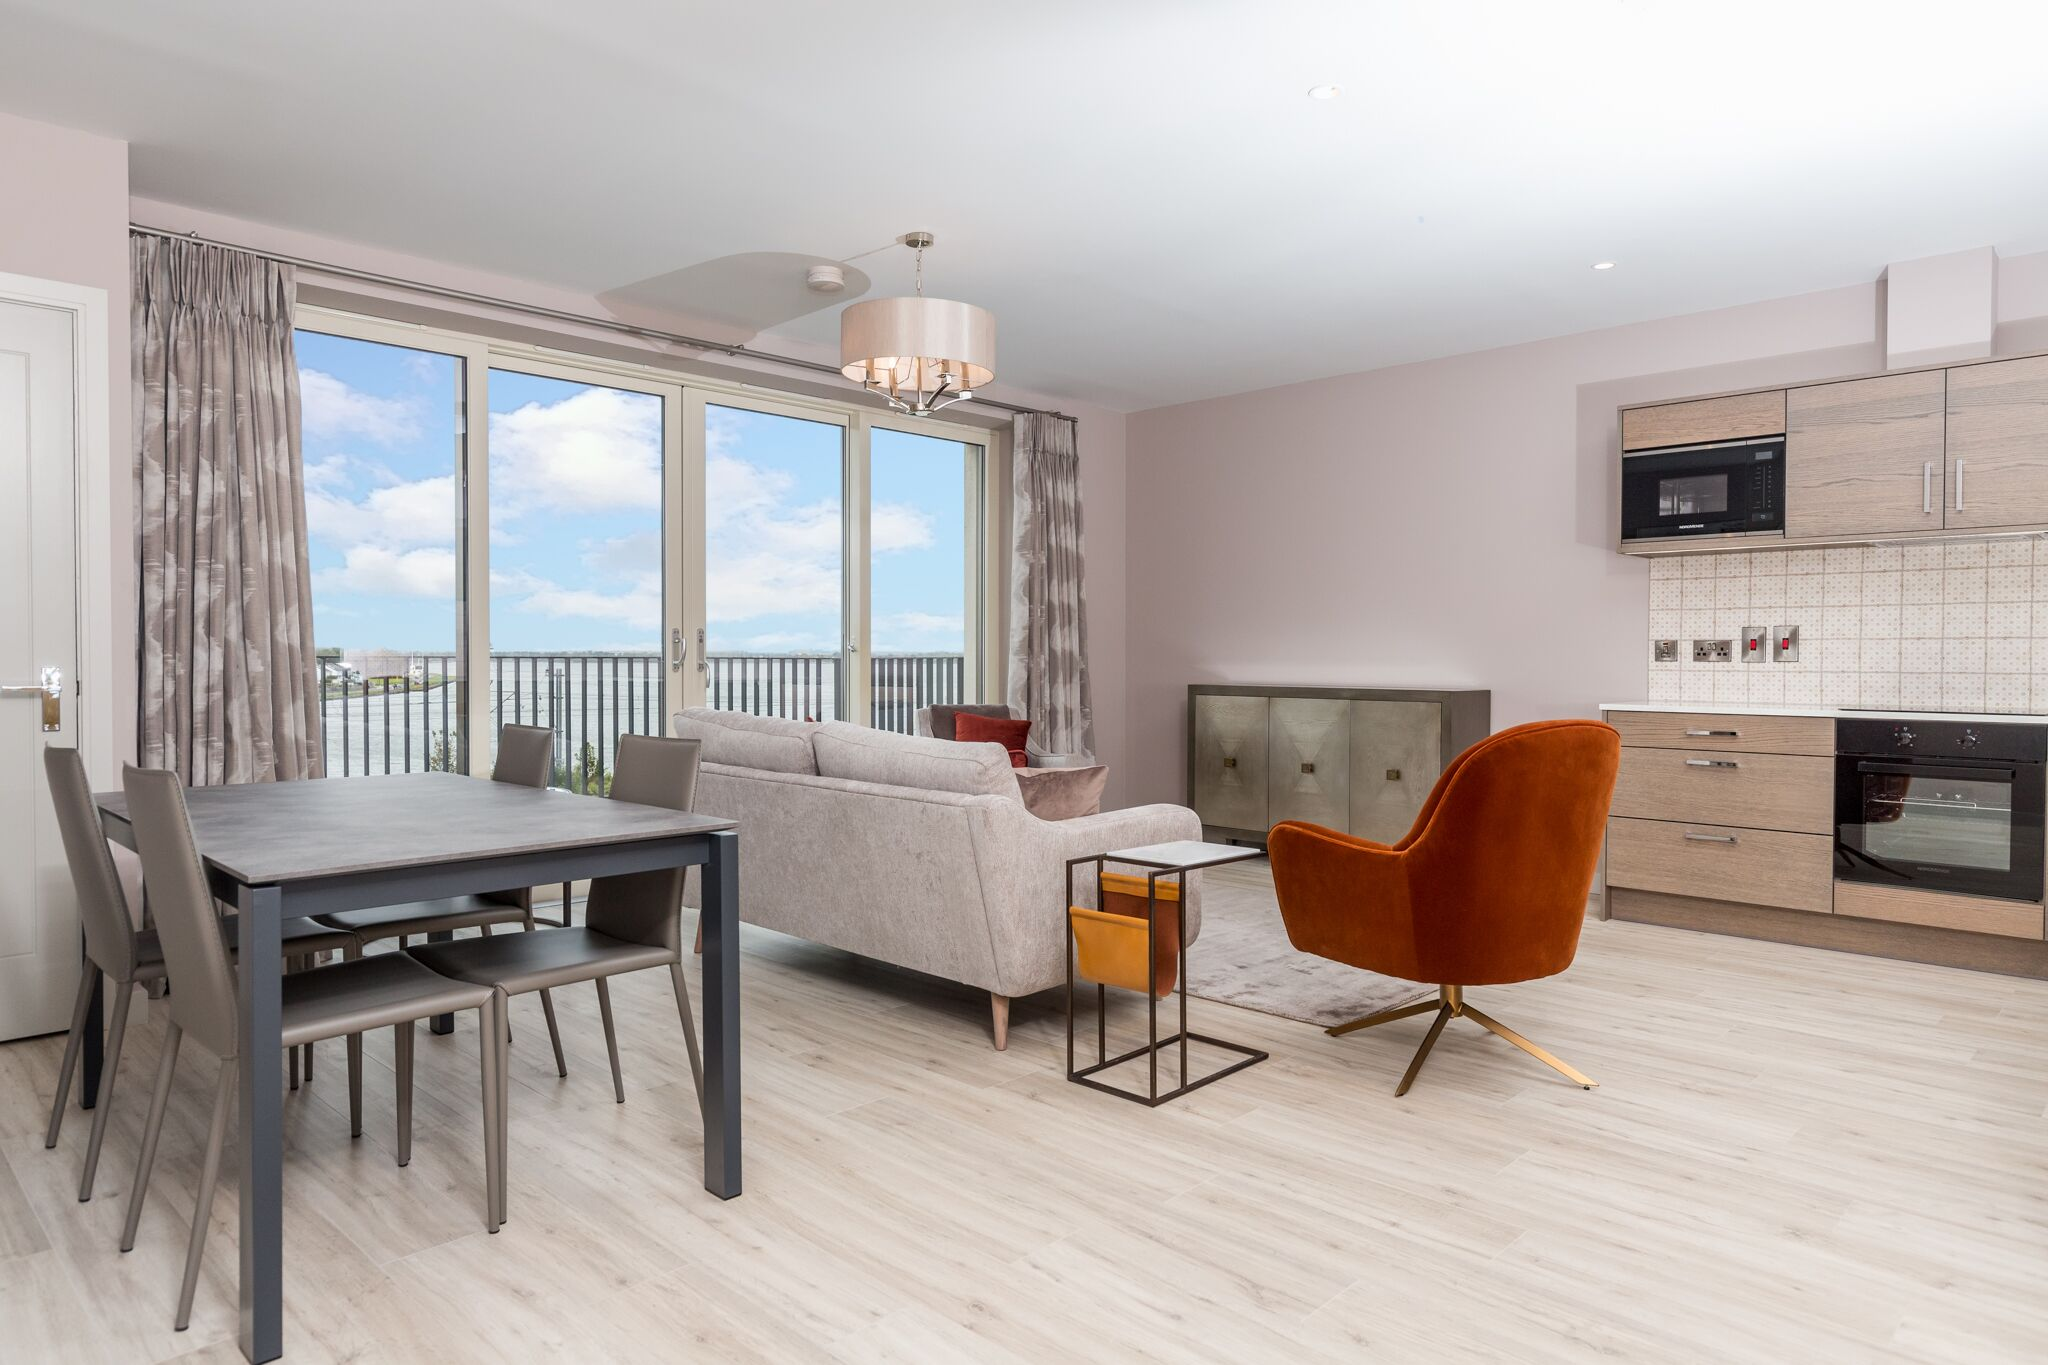 2 Bed Property For Rent in Strand Apartments Dublin ...